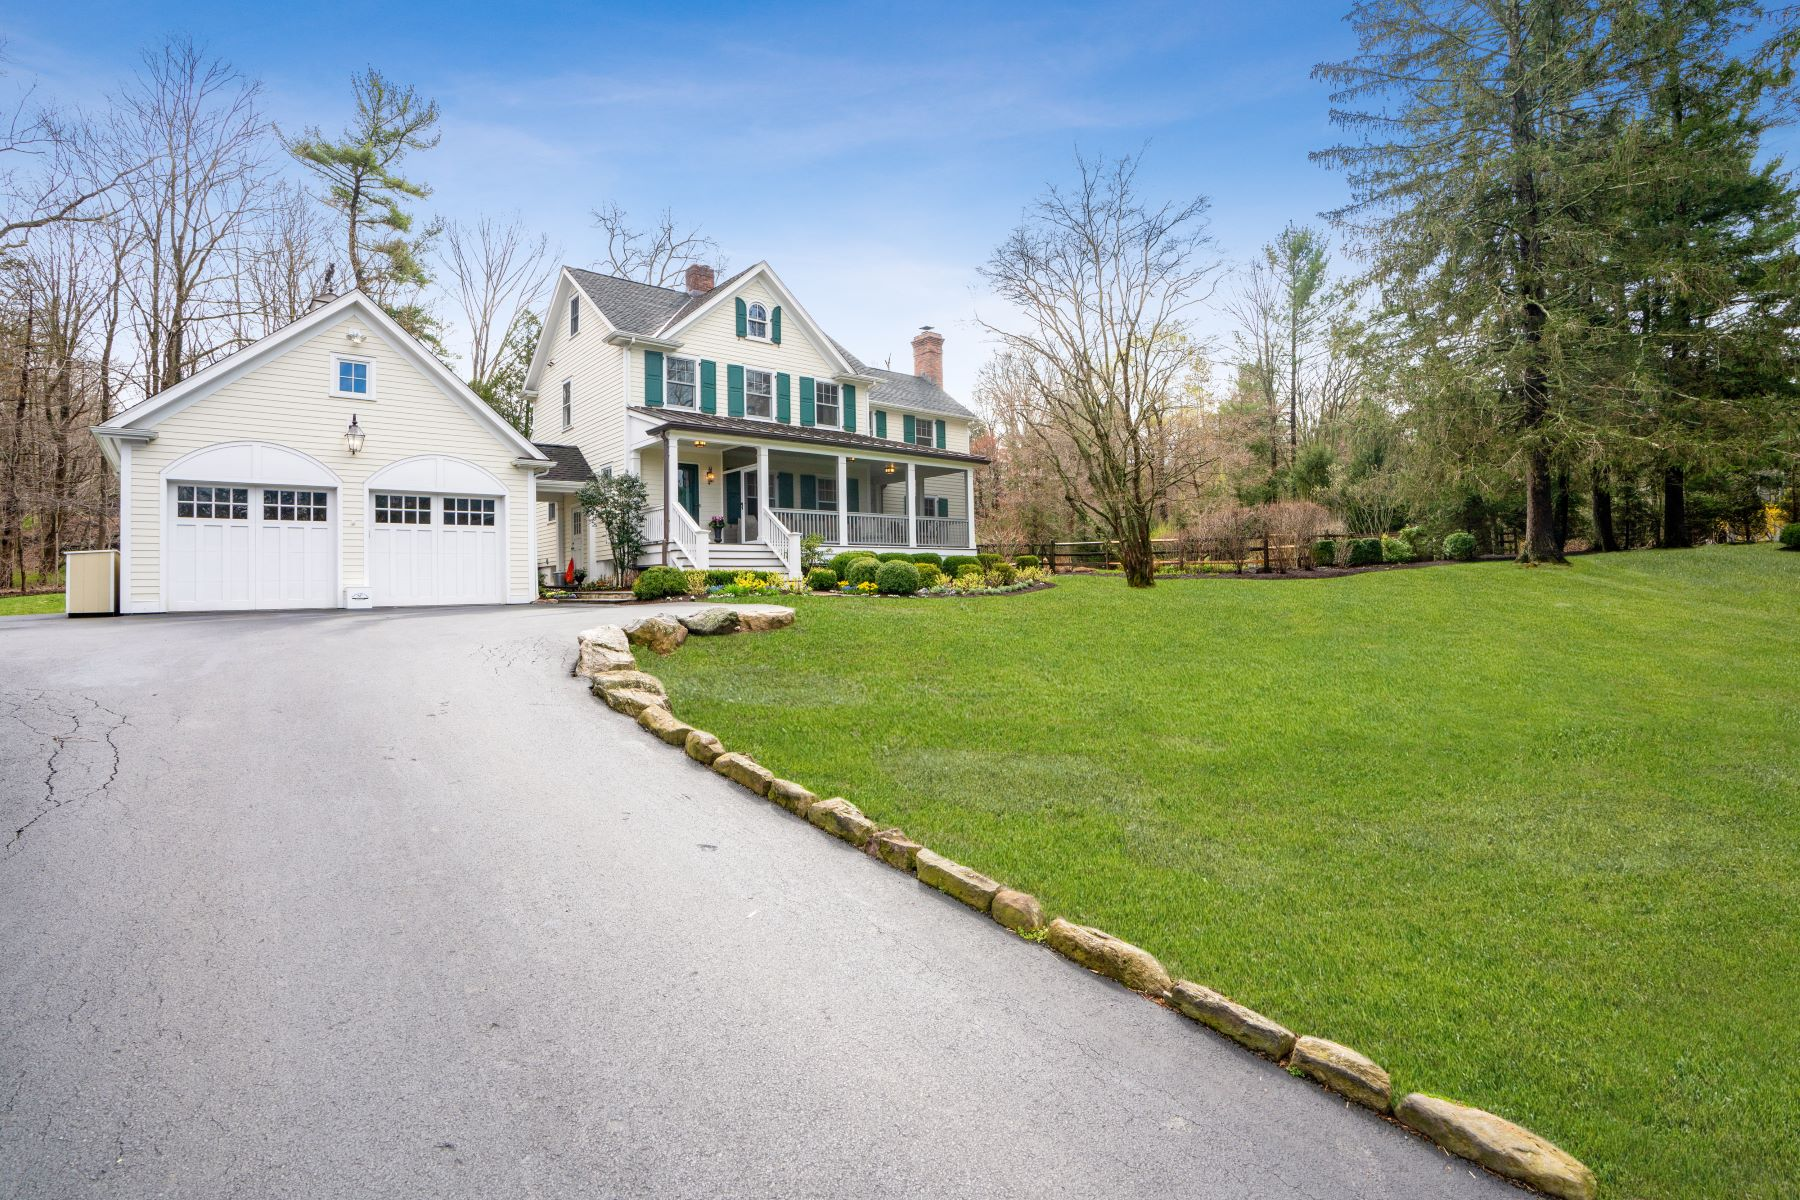 Property for Sale at Katonah Jewel 75 Quicks Lane Katonah, New York 10536 United States